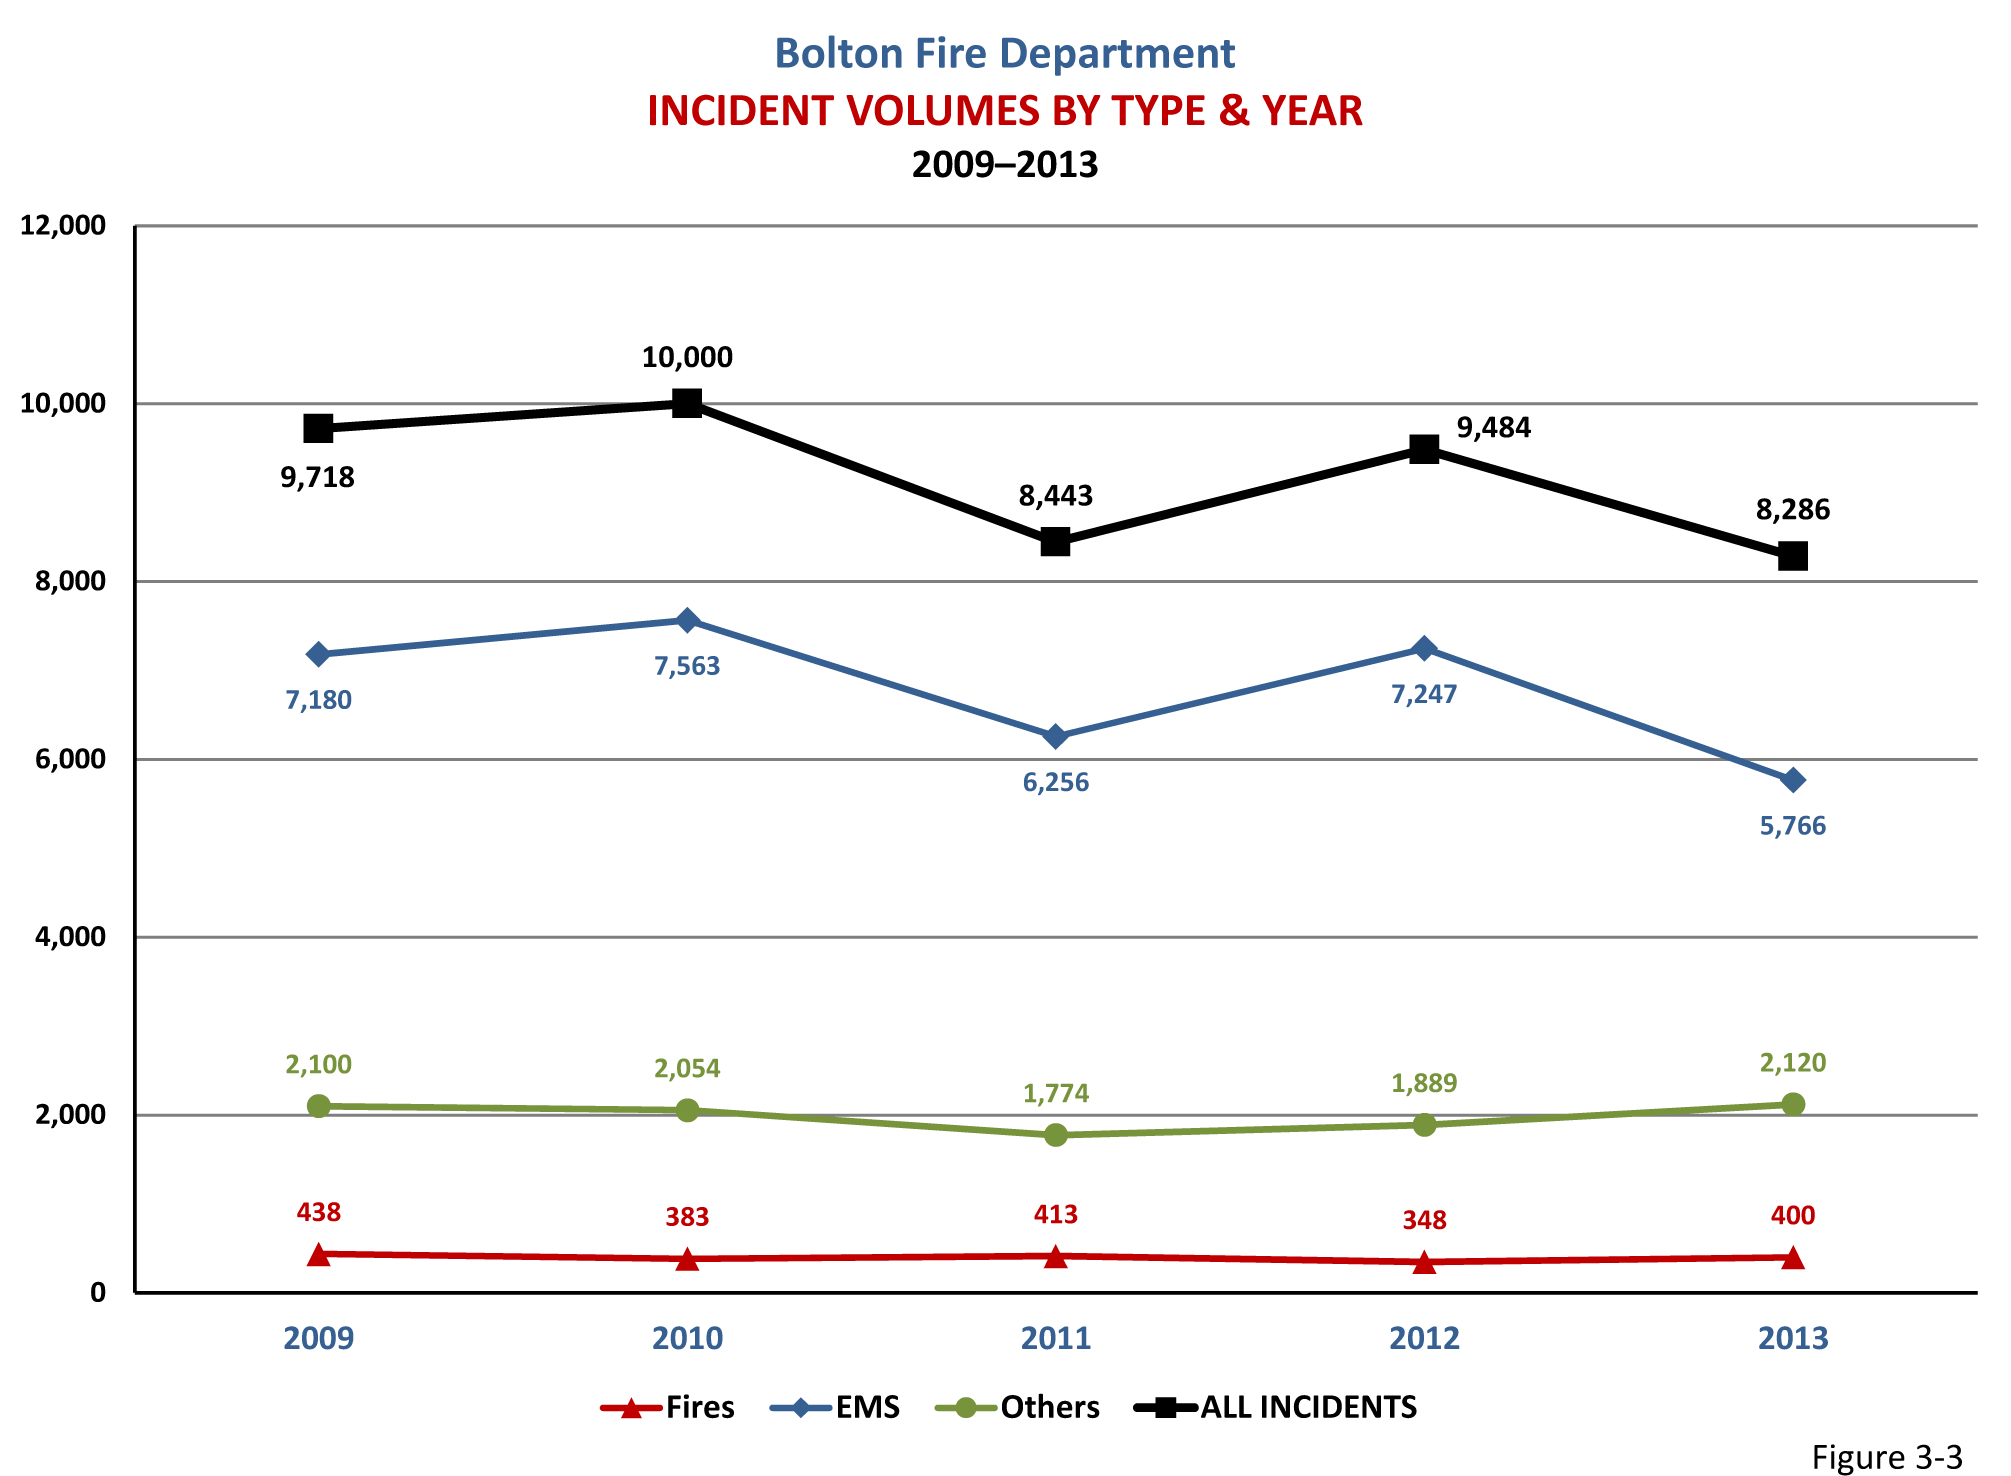 Figure 3-3: Chart of Incident volumes in Bolton from 2009-2013